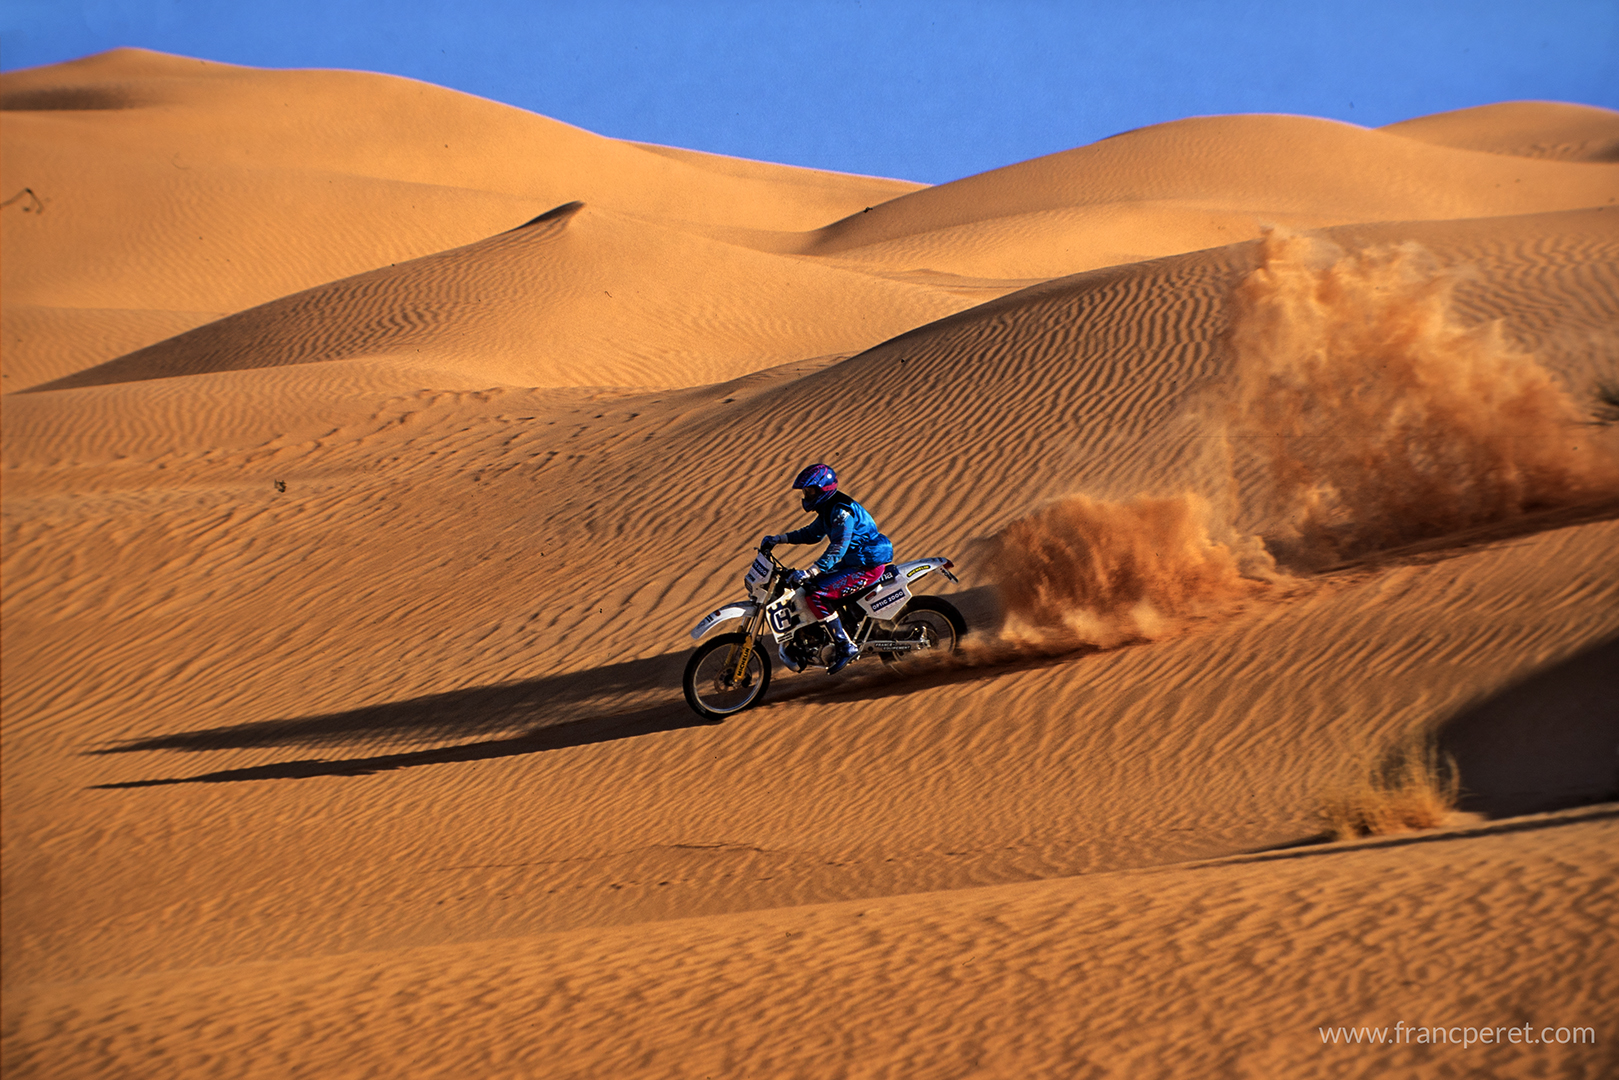 Sometime, my job was to drift in the Tunisian Desert (1990) riding a racing bike, one of my best riding memory, a unique moment.